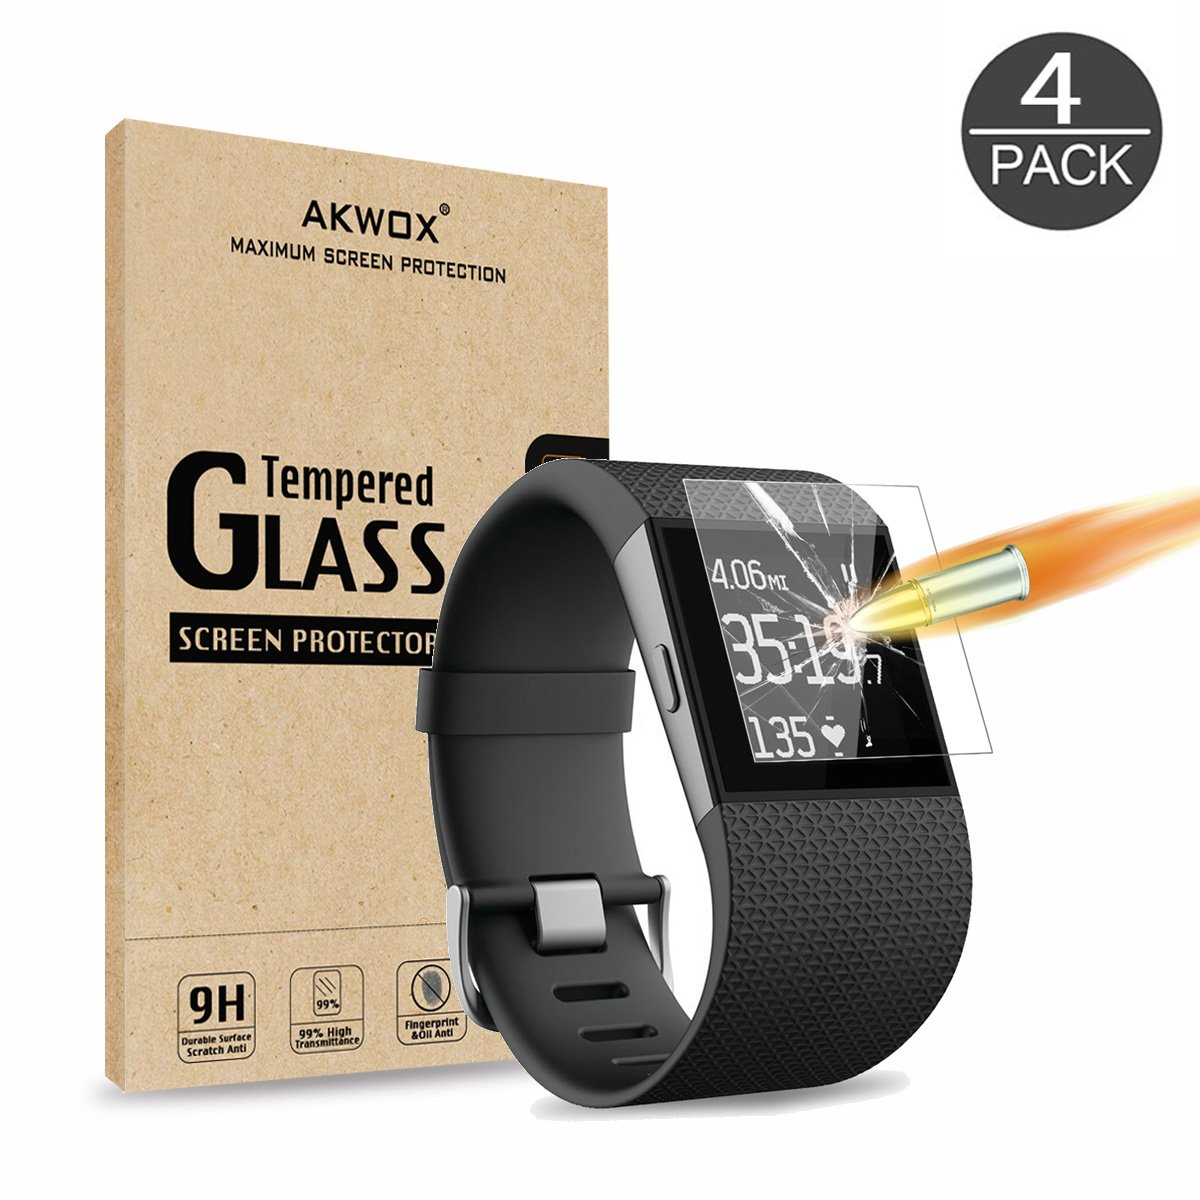 (Pack of 4) Tempered Glass Screen Protector for Fitbit Surge, Akwox [0.3mm 2.5D High Definition 9H] Premium Clear Screen Protective Film for Fitbit Surge Fitbit Surge Fitness Superwatch